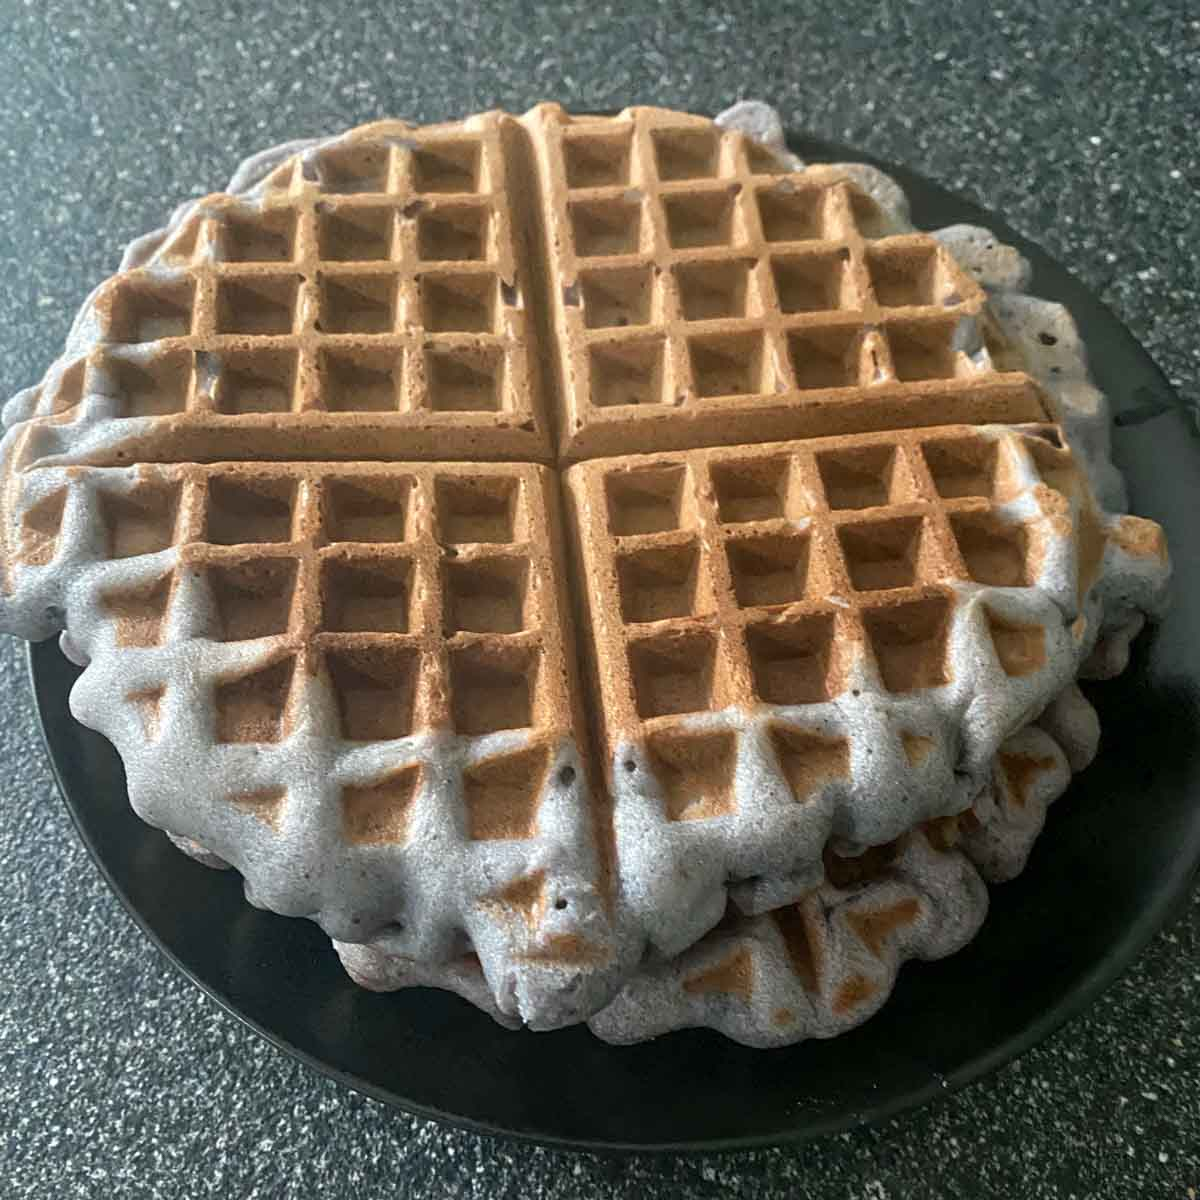 Ube Mochi mix from Trader Joe's made into waffles - 2 on plate